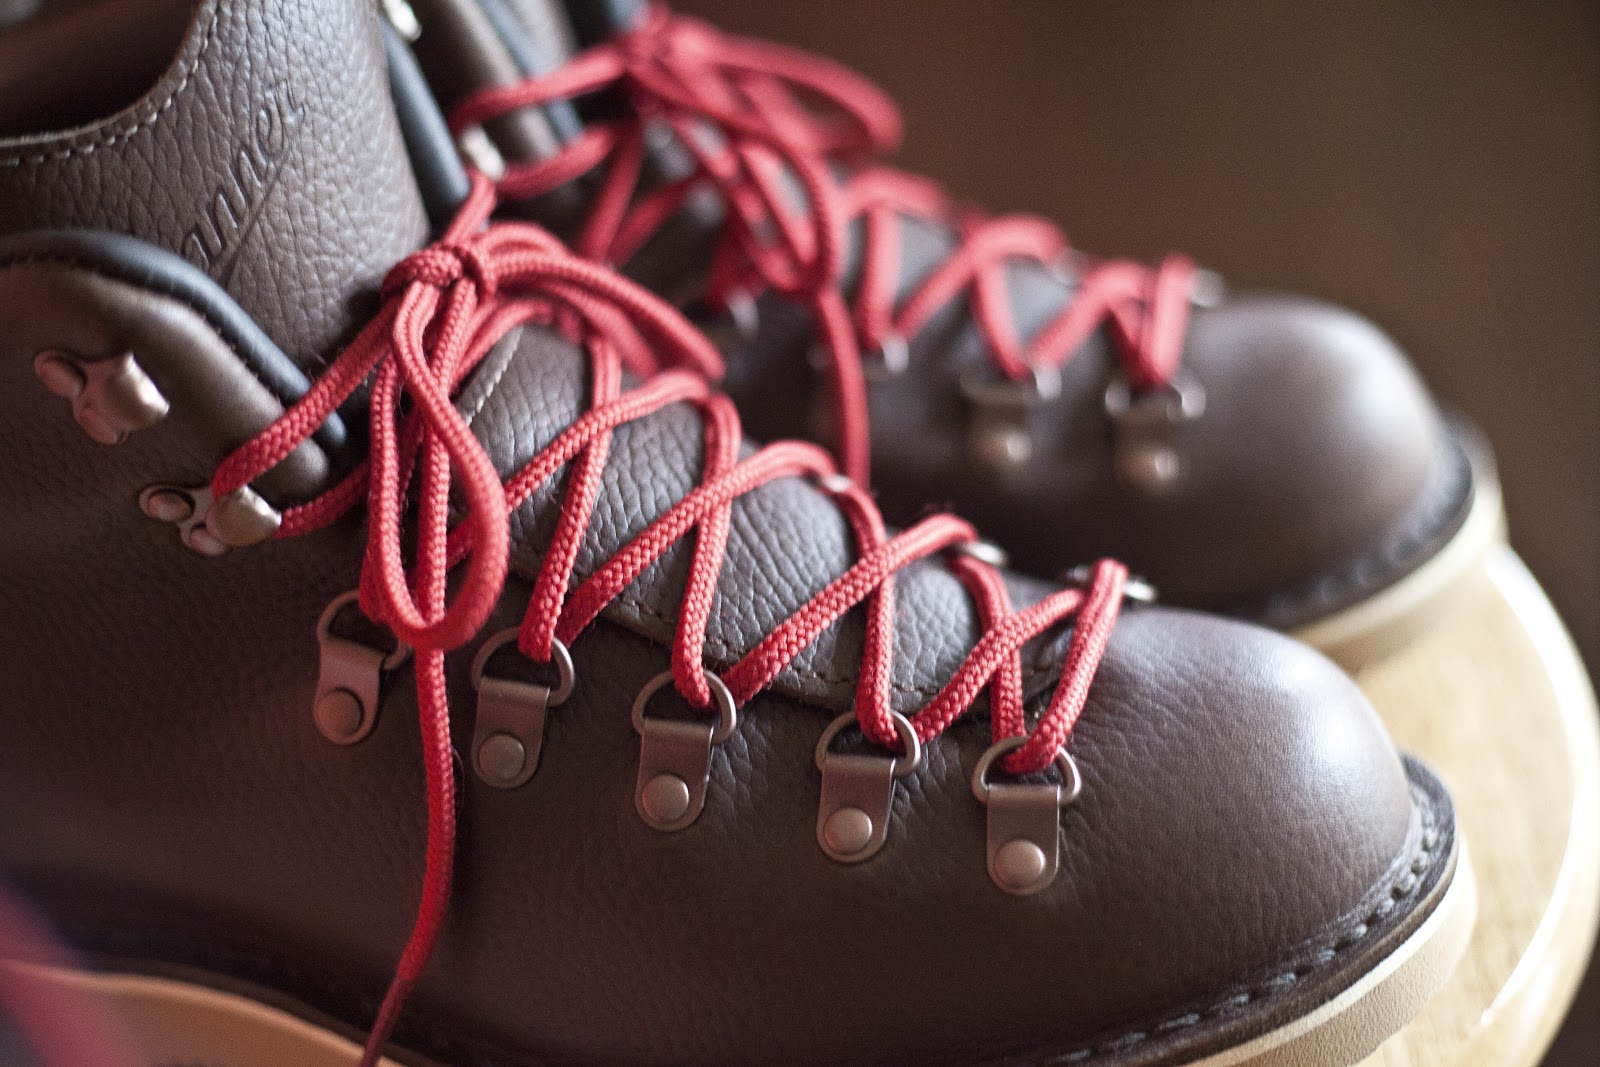 Alex Grant: Review: Danner Mt. Light Elkins from The Breakroom